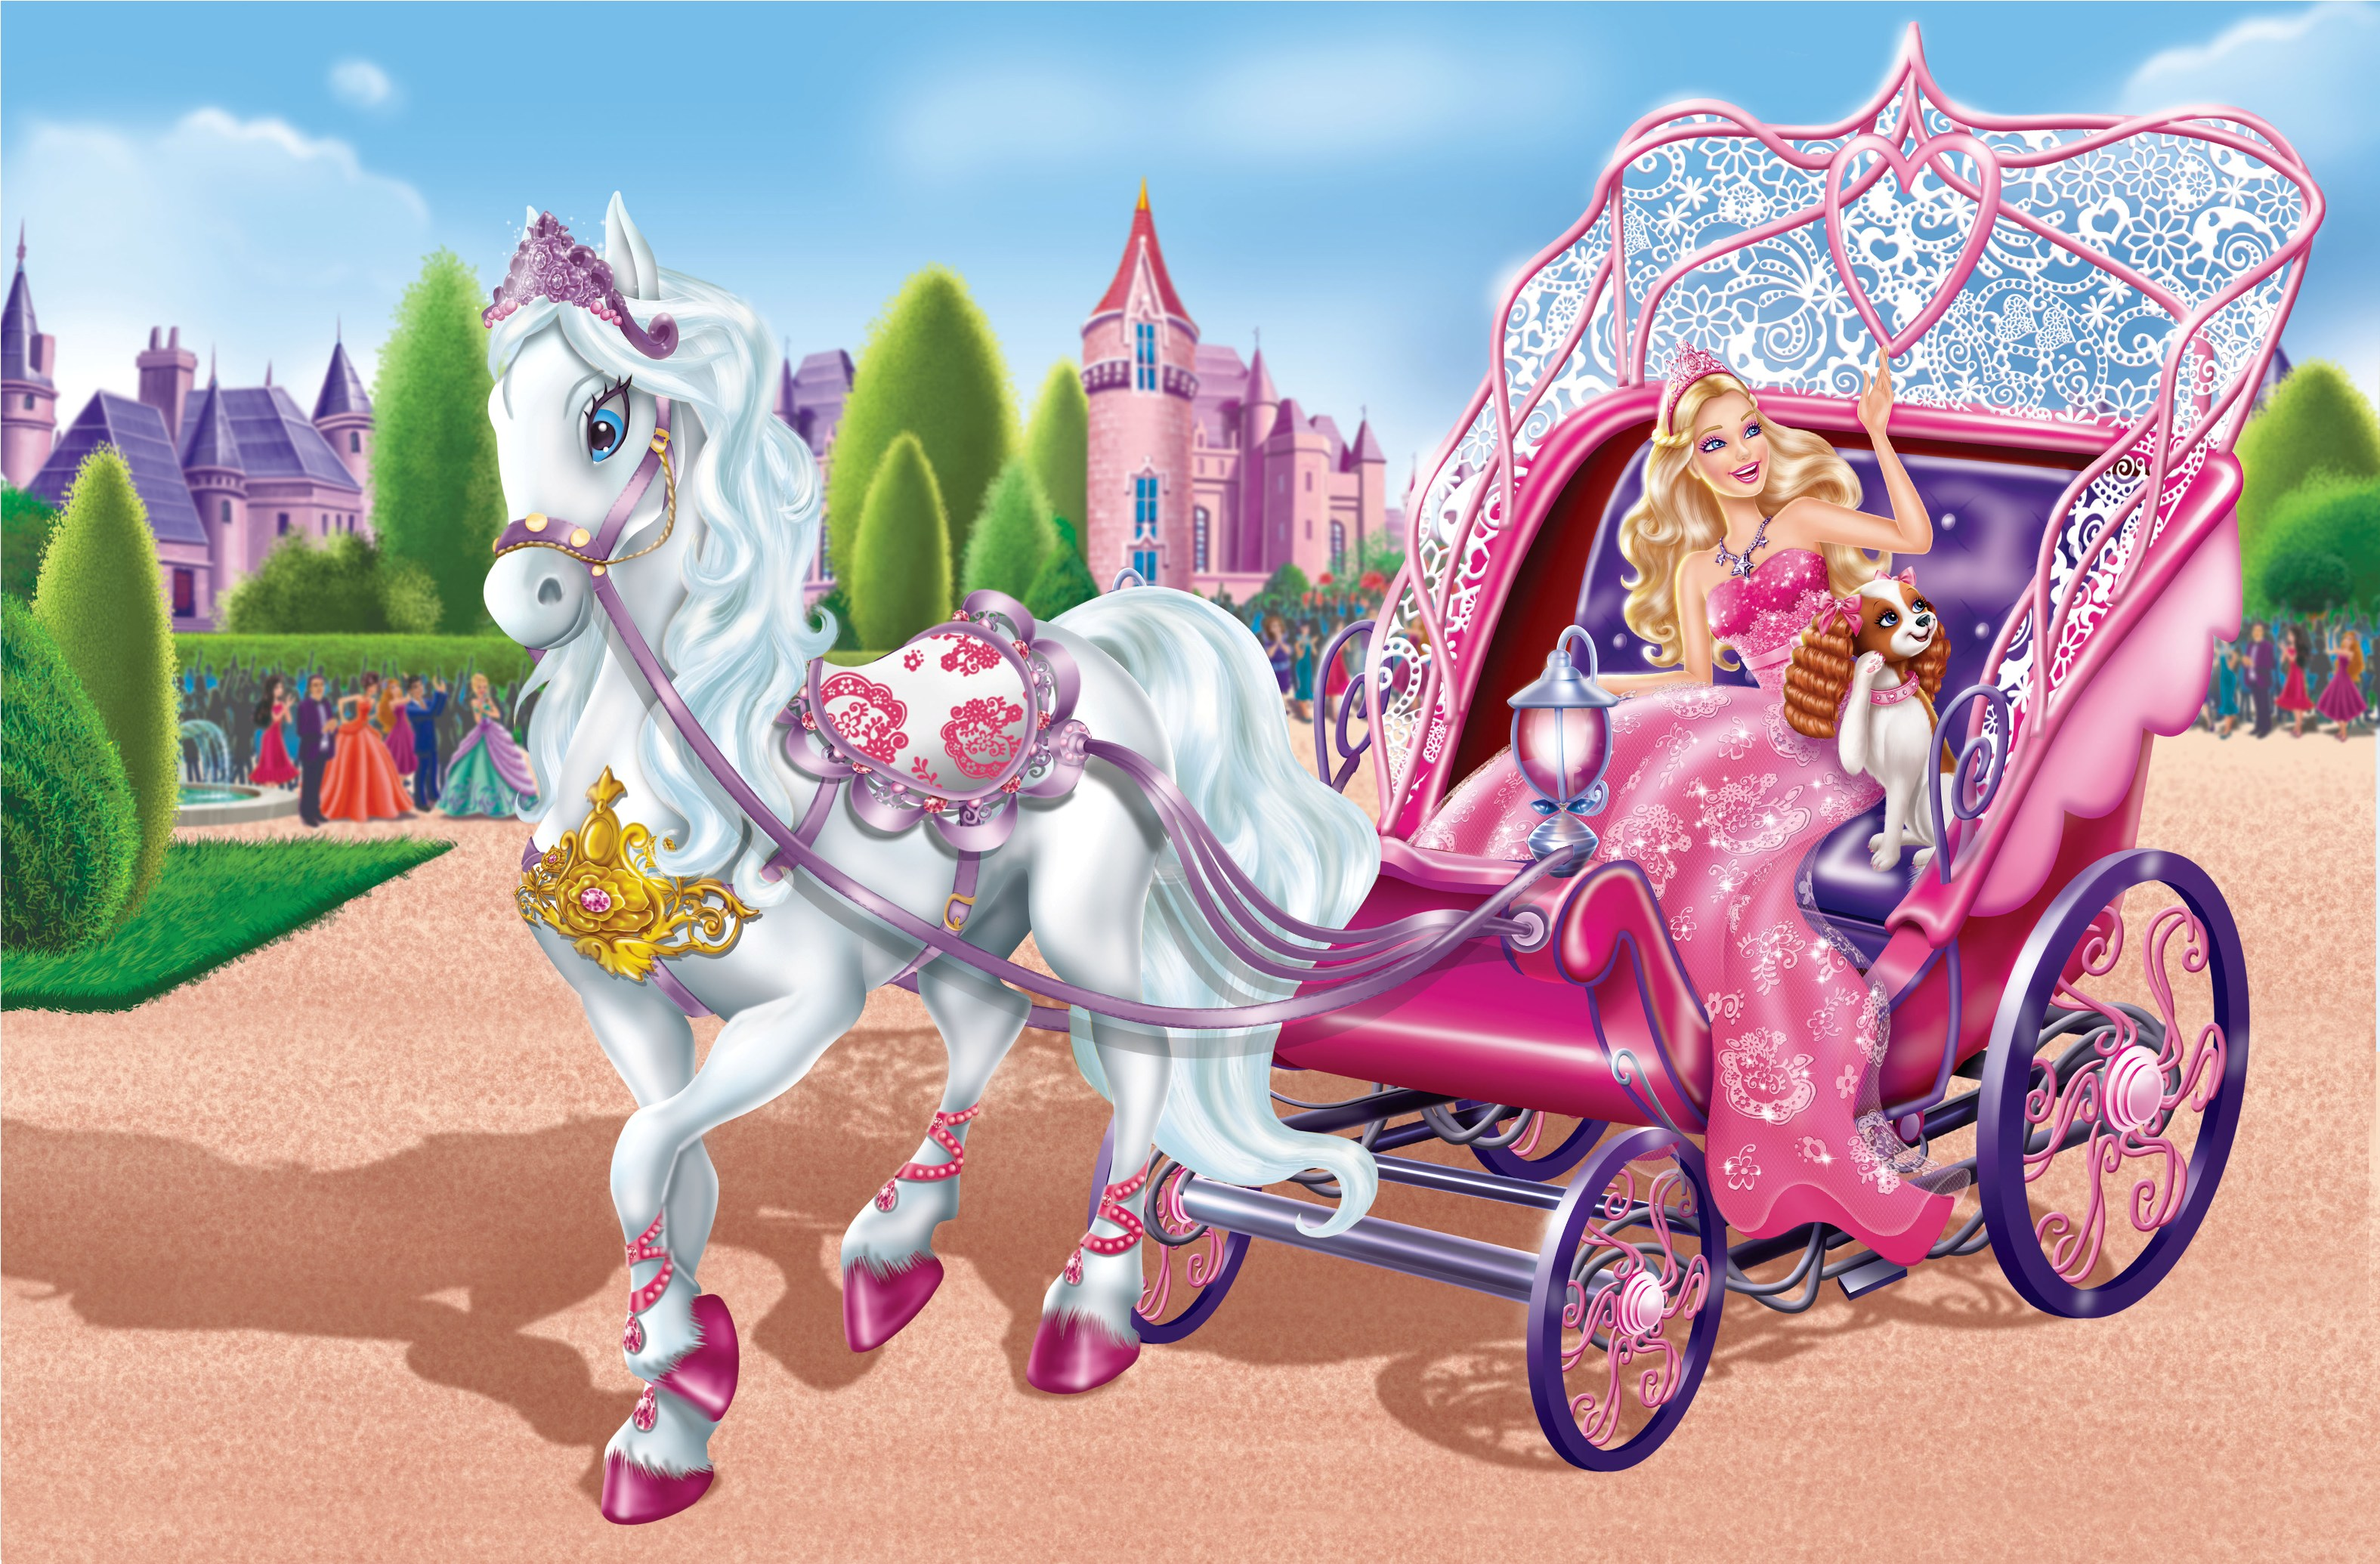 Barbie The Princess The Popstar Wallpapers High Quality Download